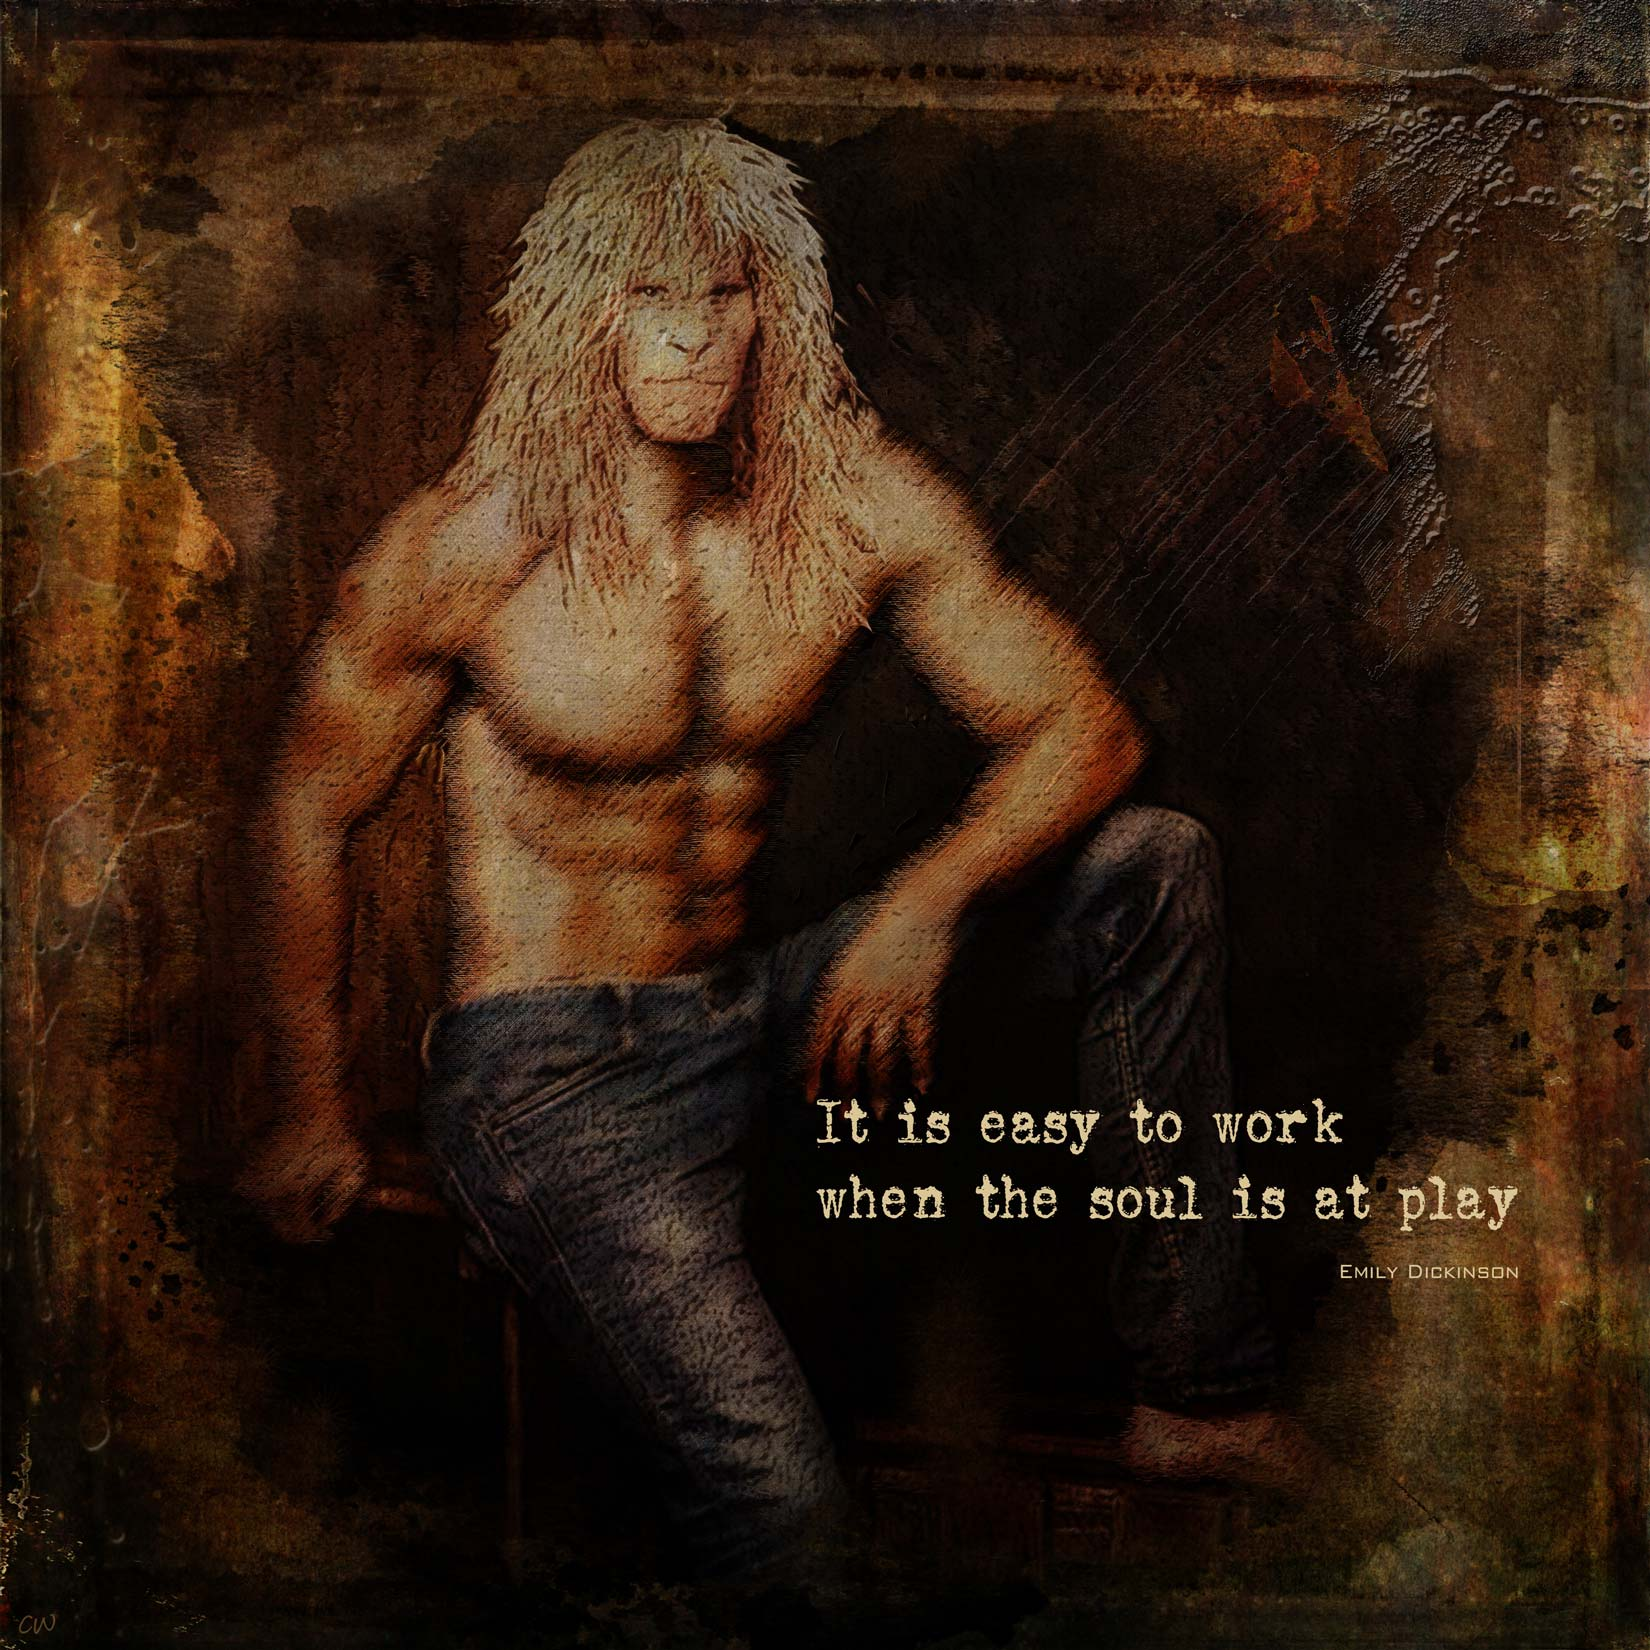 Vincent shirtless, wearing jeans. Text reads: It is easy to work when the soul is at play (Emily Dickinson)